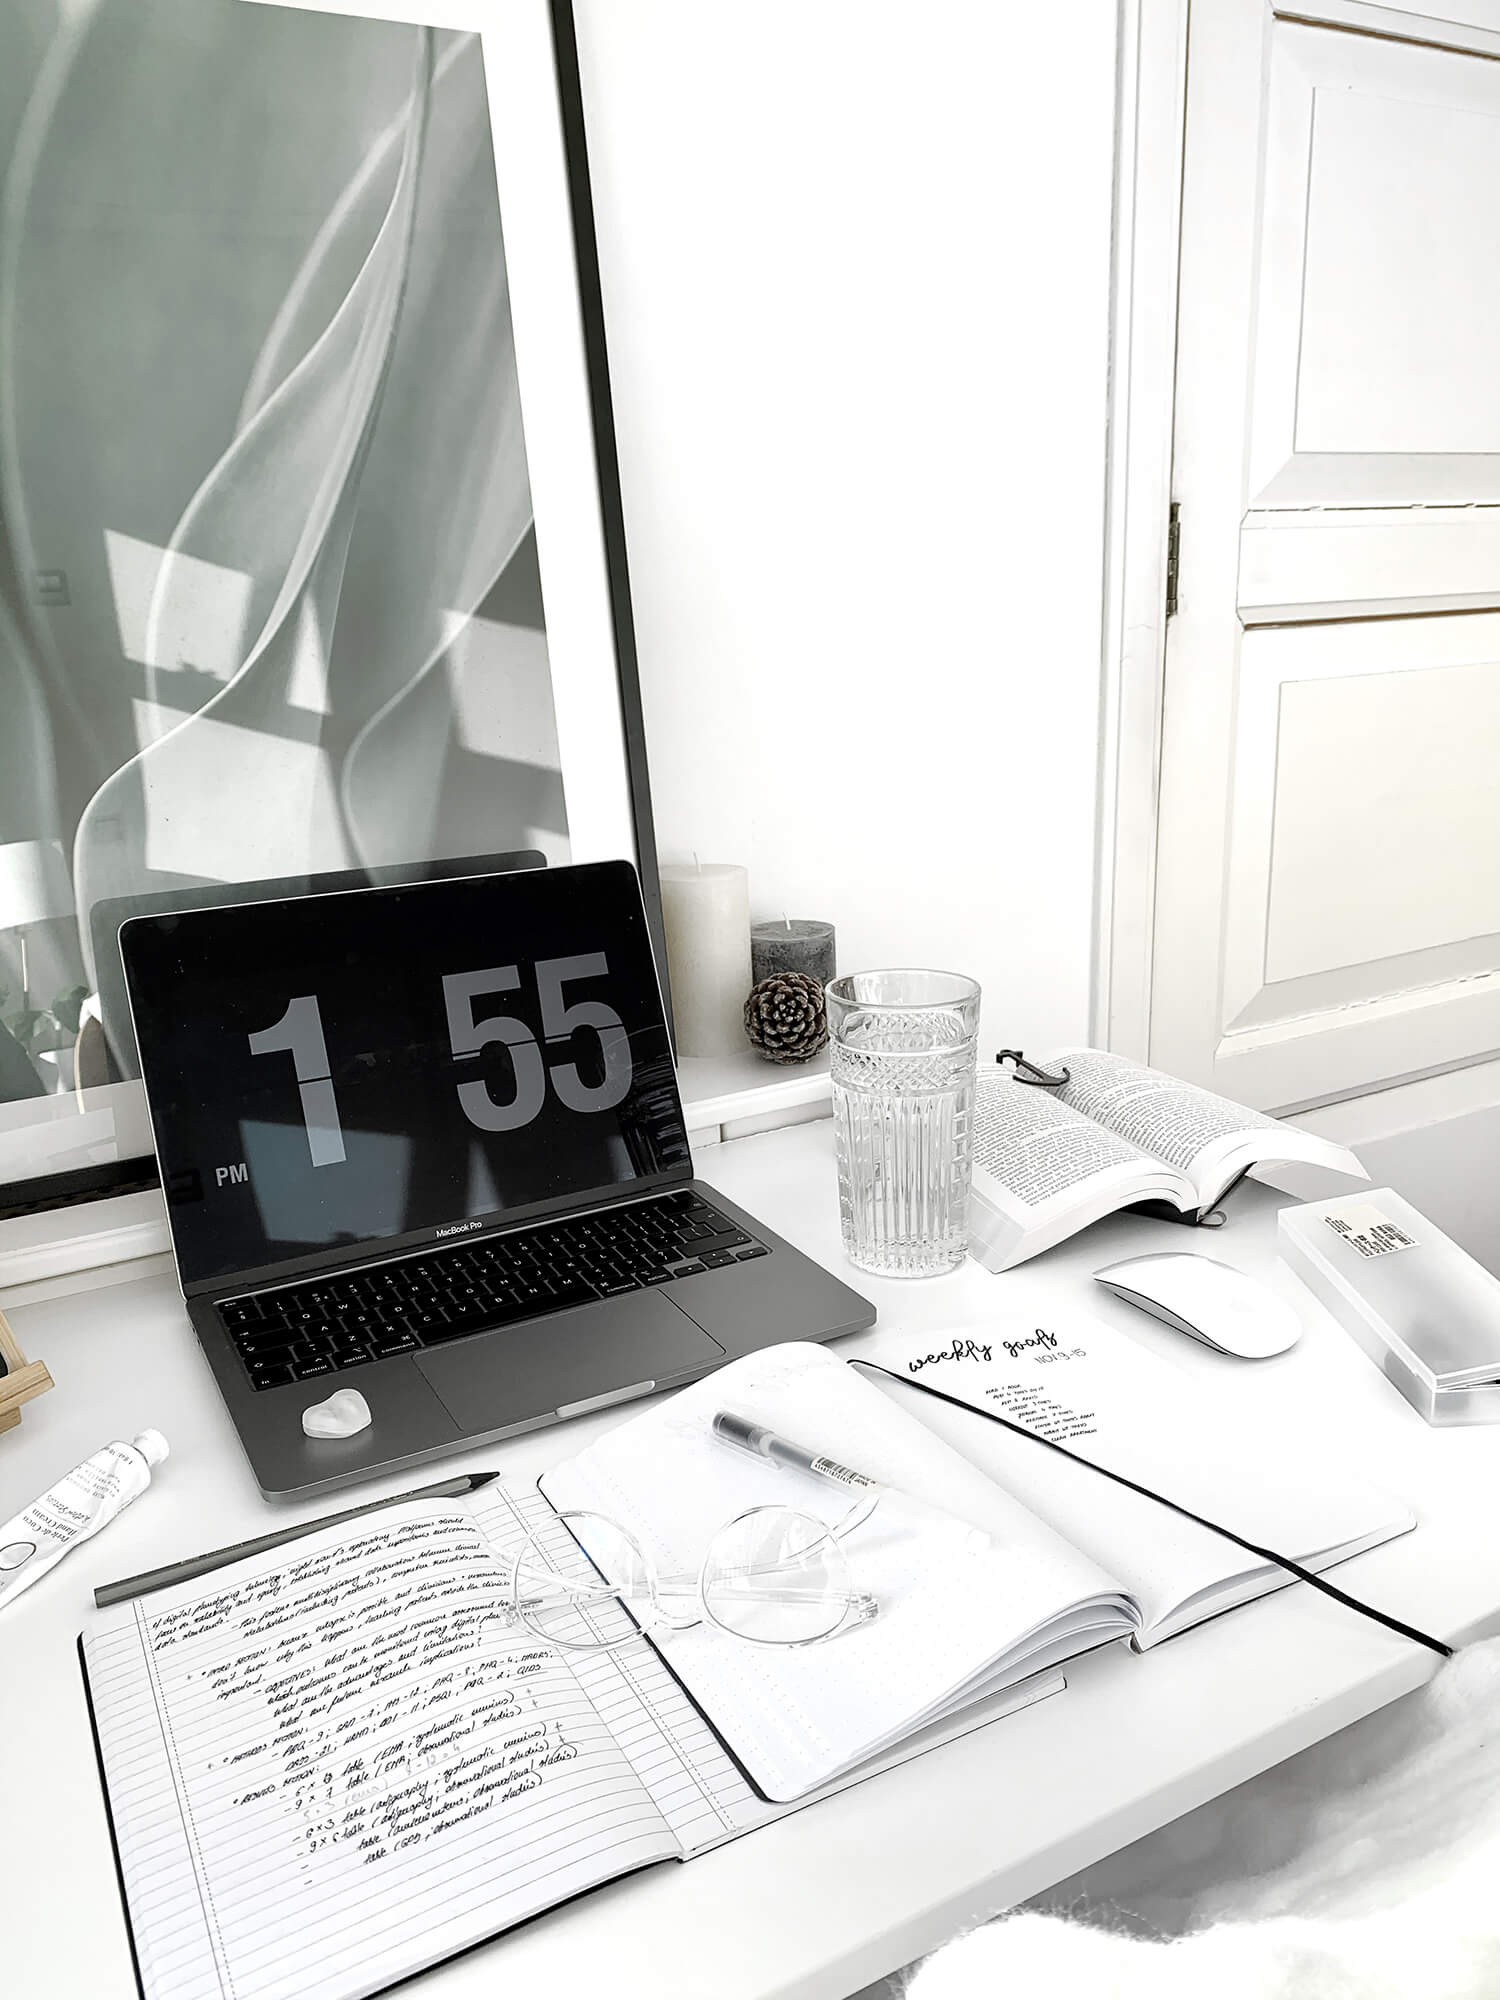 Eve is a minimalist at heart. Since her desk is just 70 cm wide (27,5″), she only keeps the essentials: her laptop, iPad, keyboard, mouse, and notebook